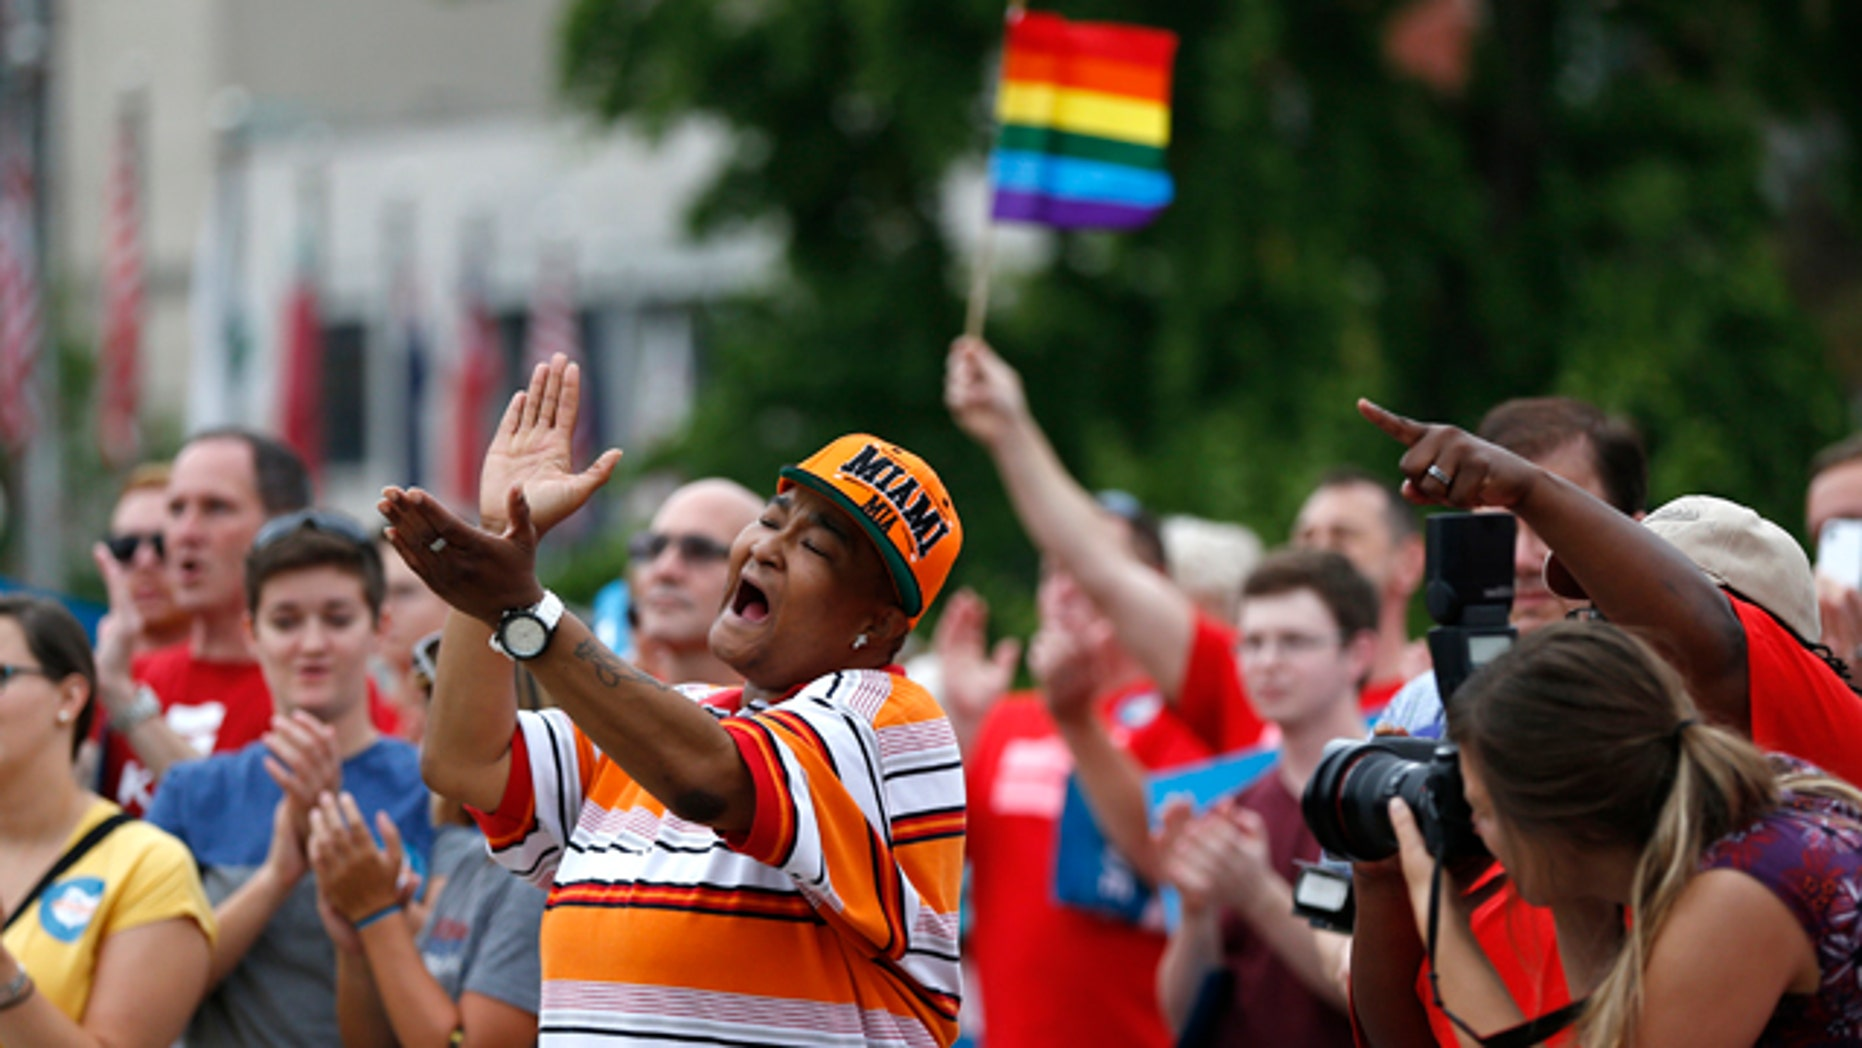 August 5, 2014: Corey Smith of Mt. Healthy, Ohio joined hundreds of others along with the group Why Marriage Matters Ohio at a rally for gay marriage in Lytle Park in Cincinnati. Federal appeals courts soon will hear arguments in gay marriage fights from nine states, part of a slew of cases putting pressure on the U.S. Supreme Court to issue a final verdict. (AP Photo/The Cincinnati Enquirer, Jeff Swinger)